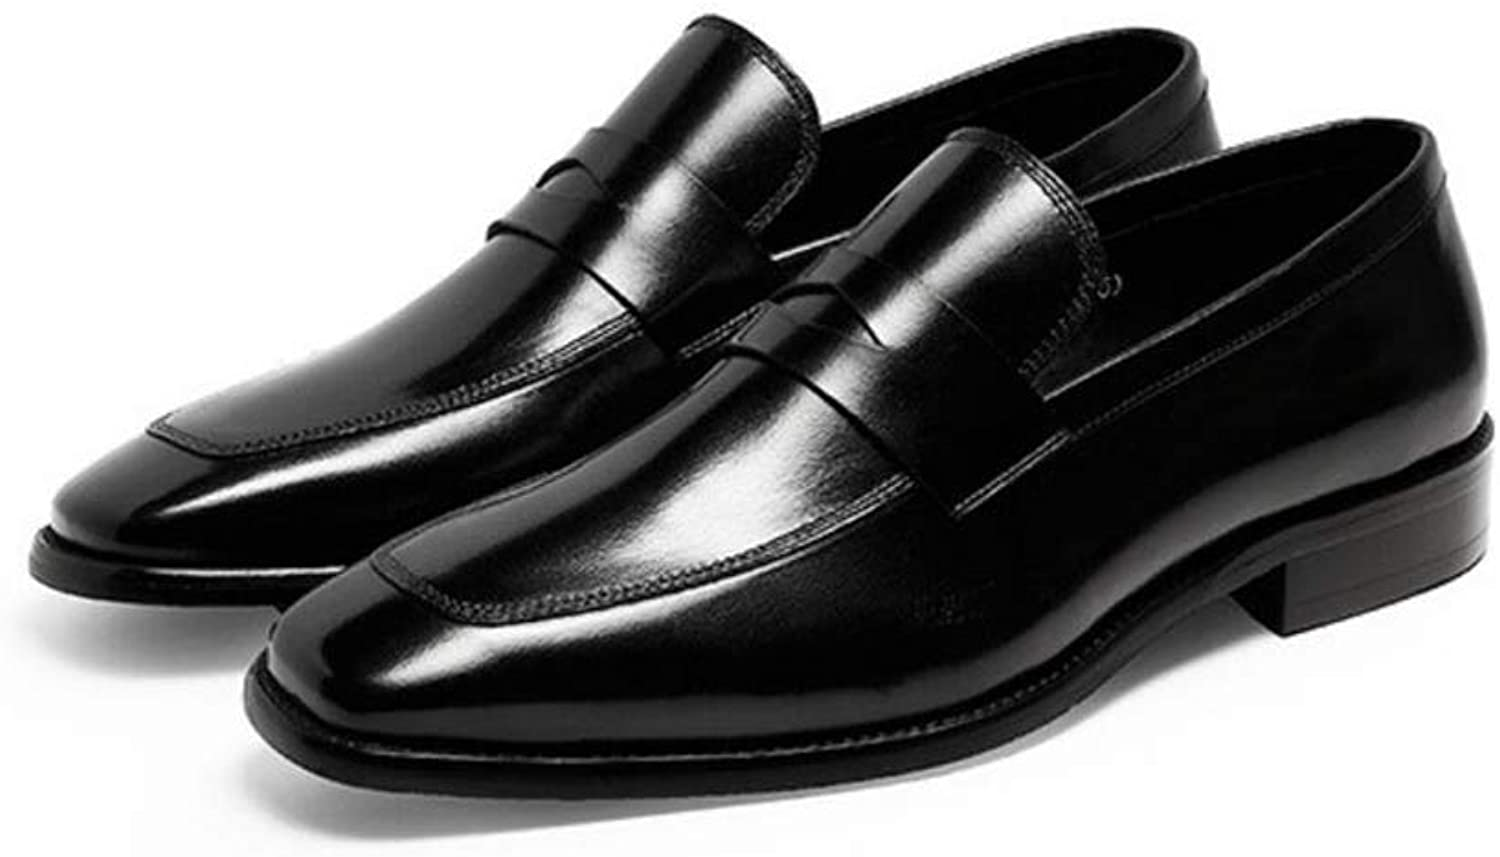 Haiyao Men's High-End Business Dress shoes, Easy to Wear Off The Feet shoes, for Office Business Party Wedding